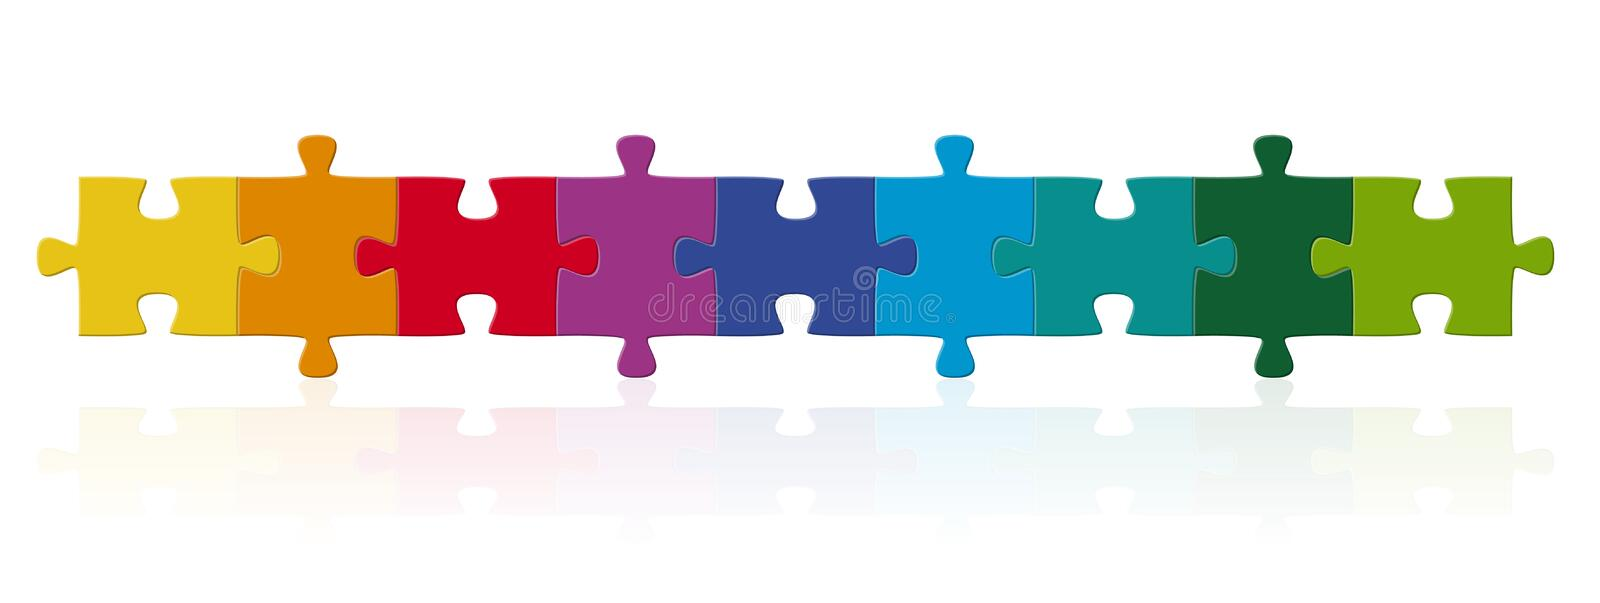 Colored puzzle pieces in series royalty free illustration